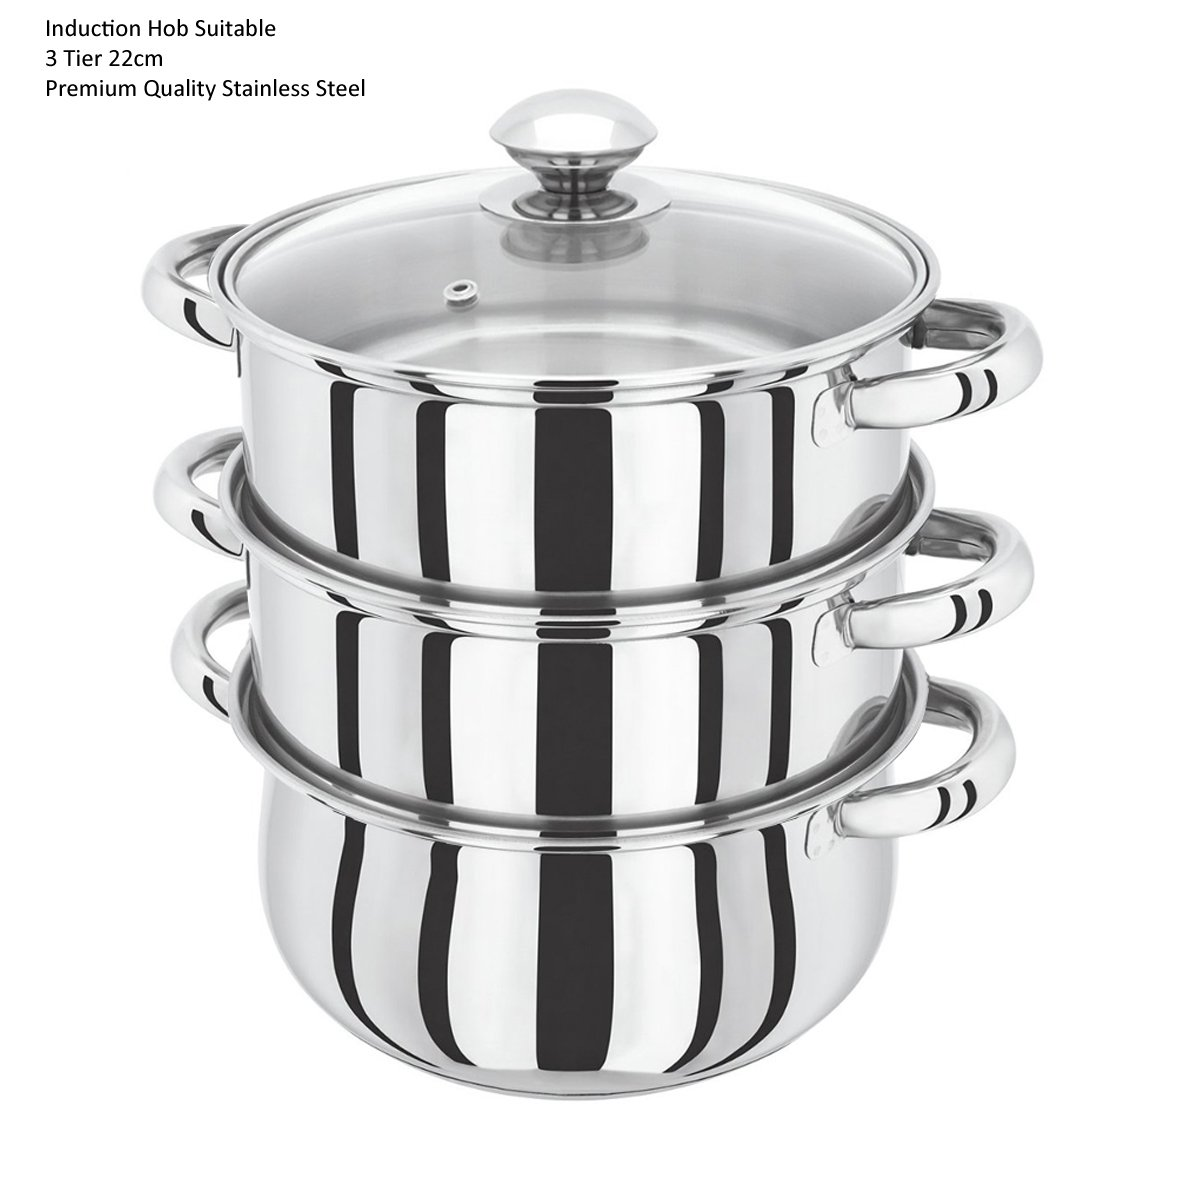 22CM 3 Tier Stainless Steel Induction Hob Steamer With Glass Lid Cookware Pot & Pan Set Denny International